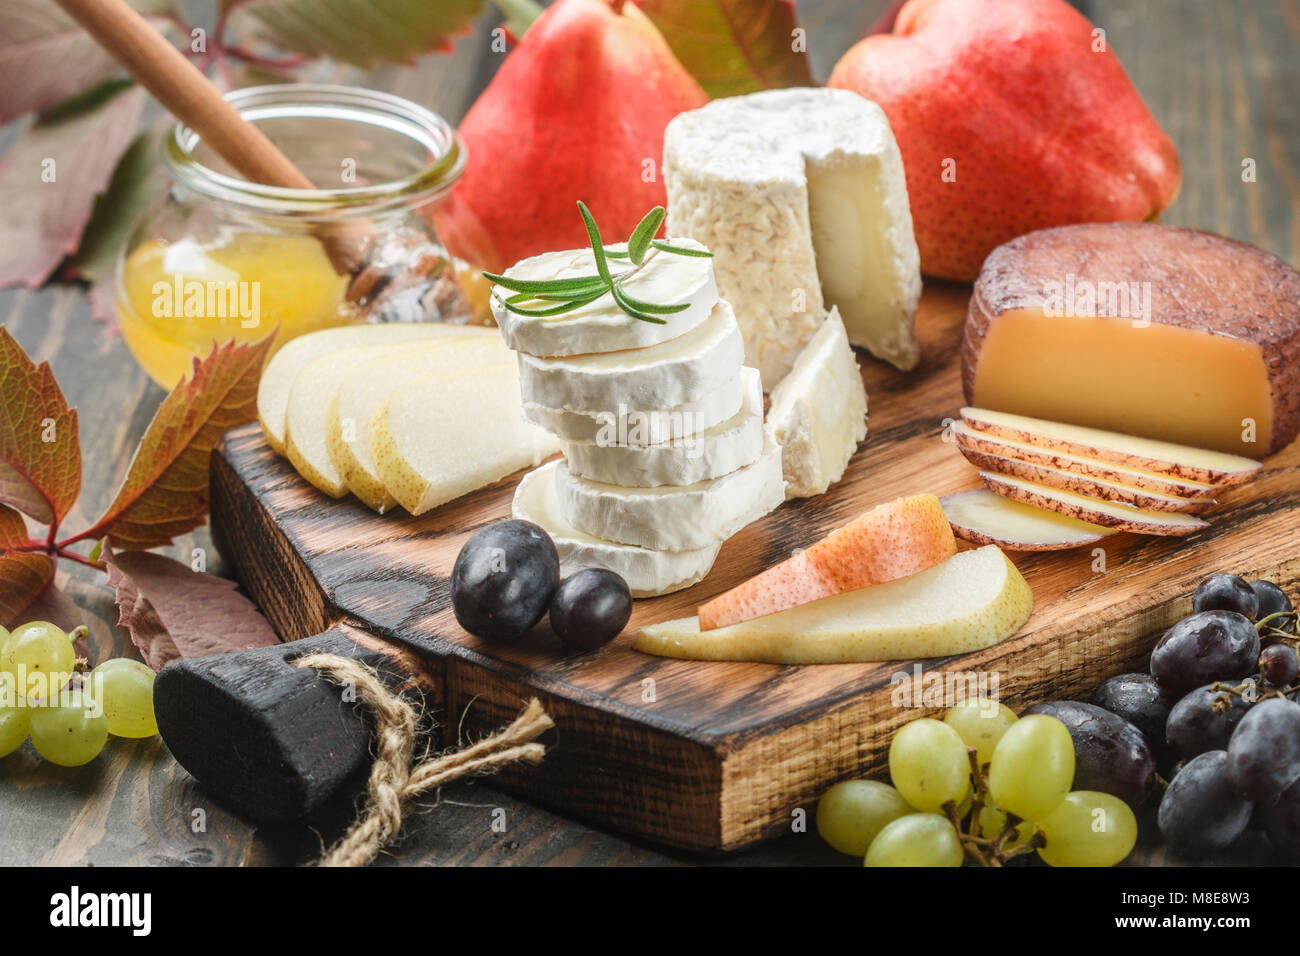 Set of fine cheeses with fruit and honey. Camembert. Bree. Grapes, pears and rosemary. Wine snacks for foodies. - Stock Image